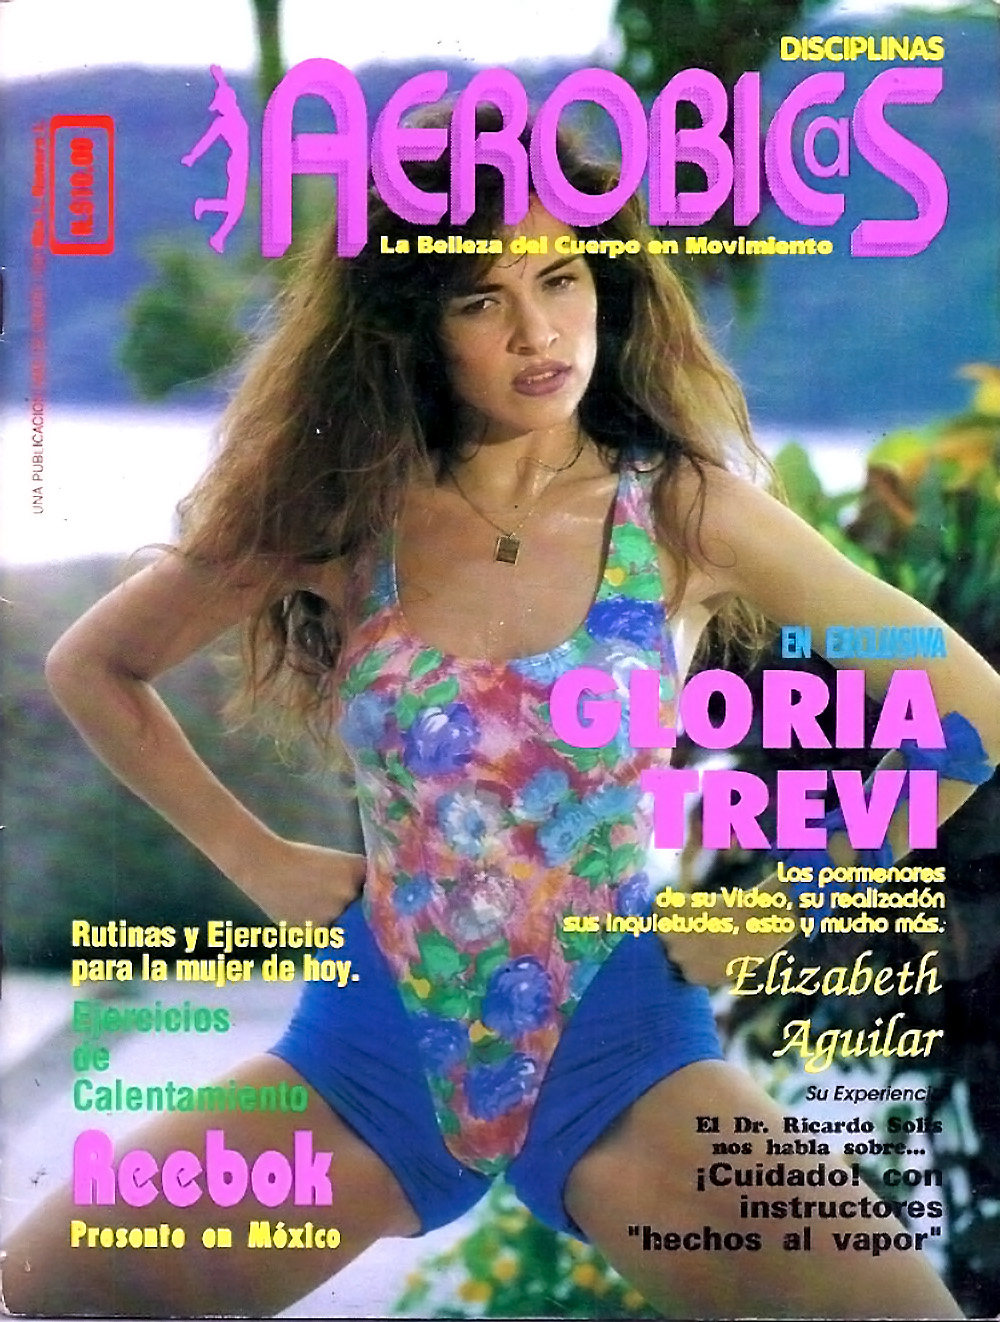 The 80s Fashion Trends That Are Back Today: Legwarmers & Lycra Leotards: Totally Rad Aerobics Fashions